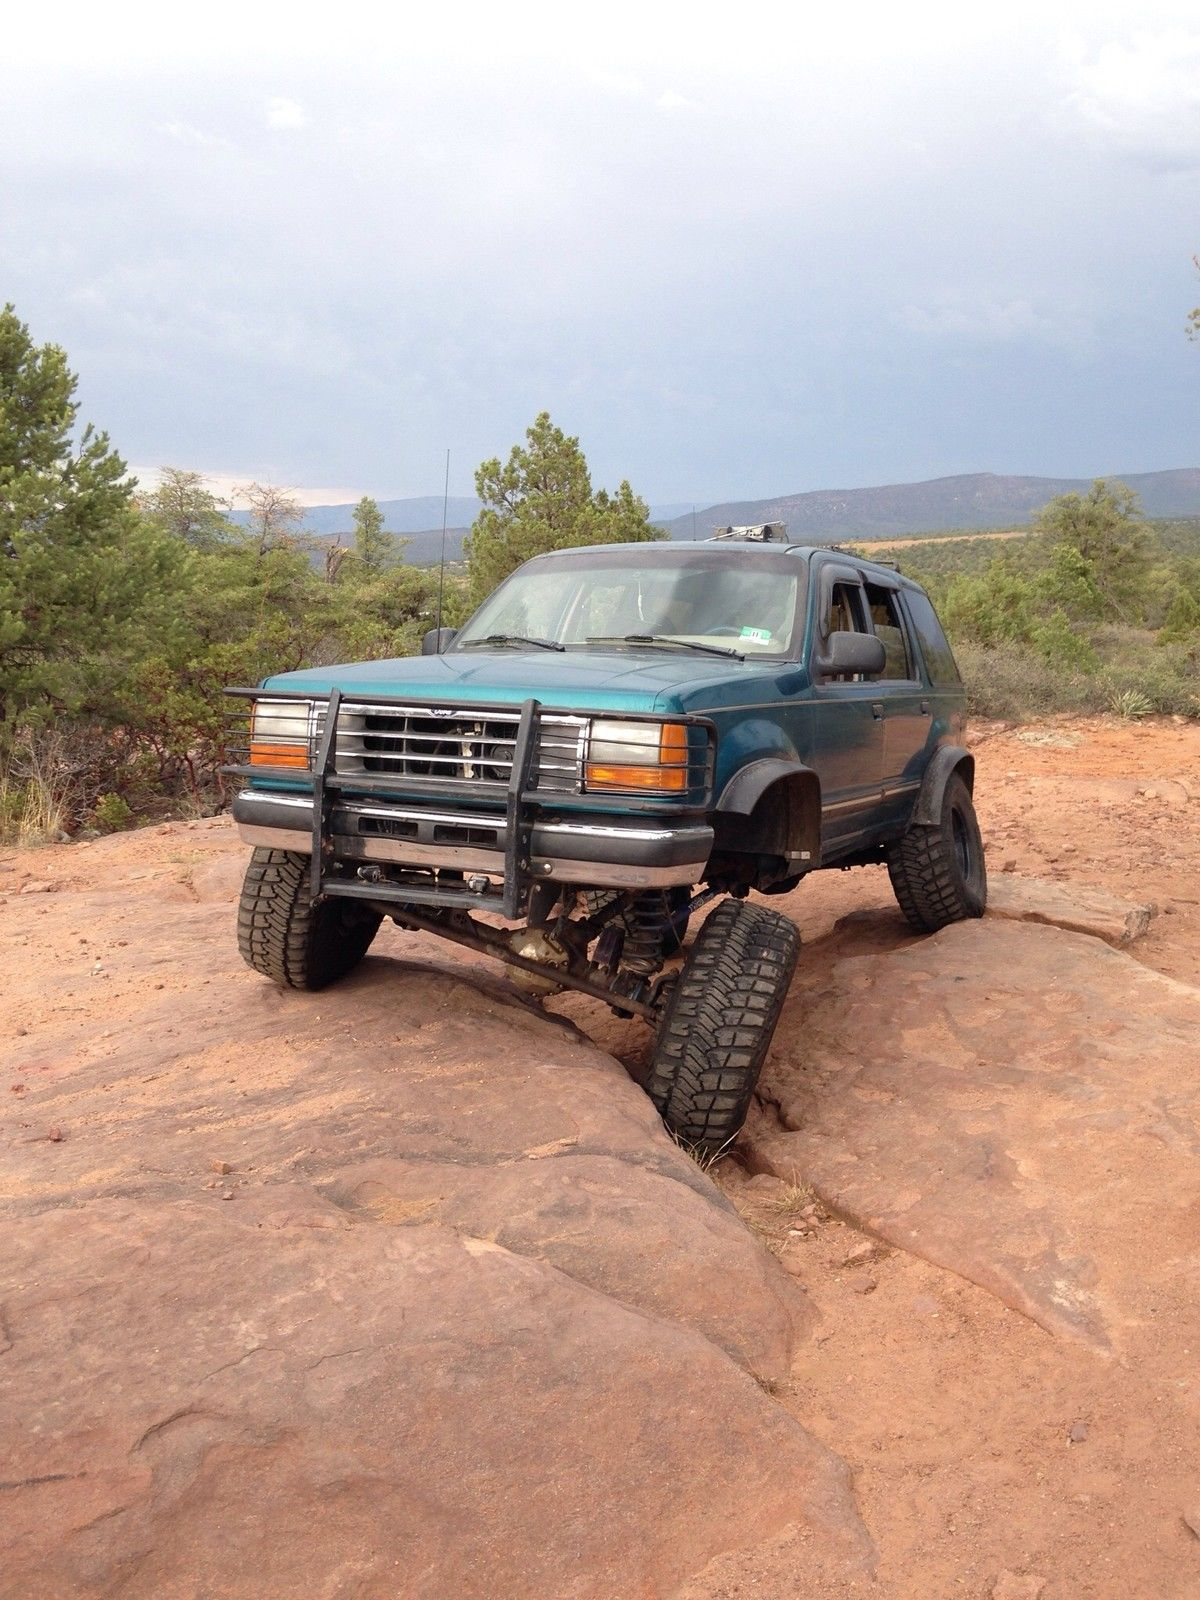 Custom Lifted 94' Ford Explorer Off Road Truck